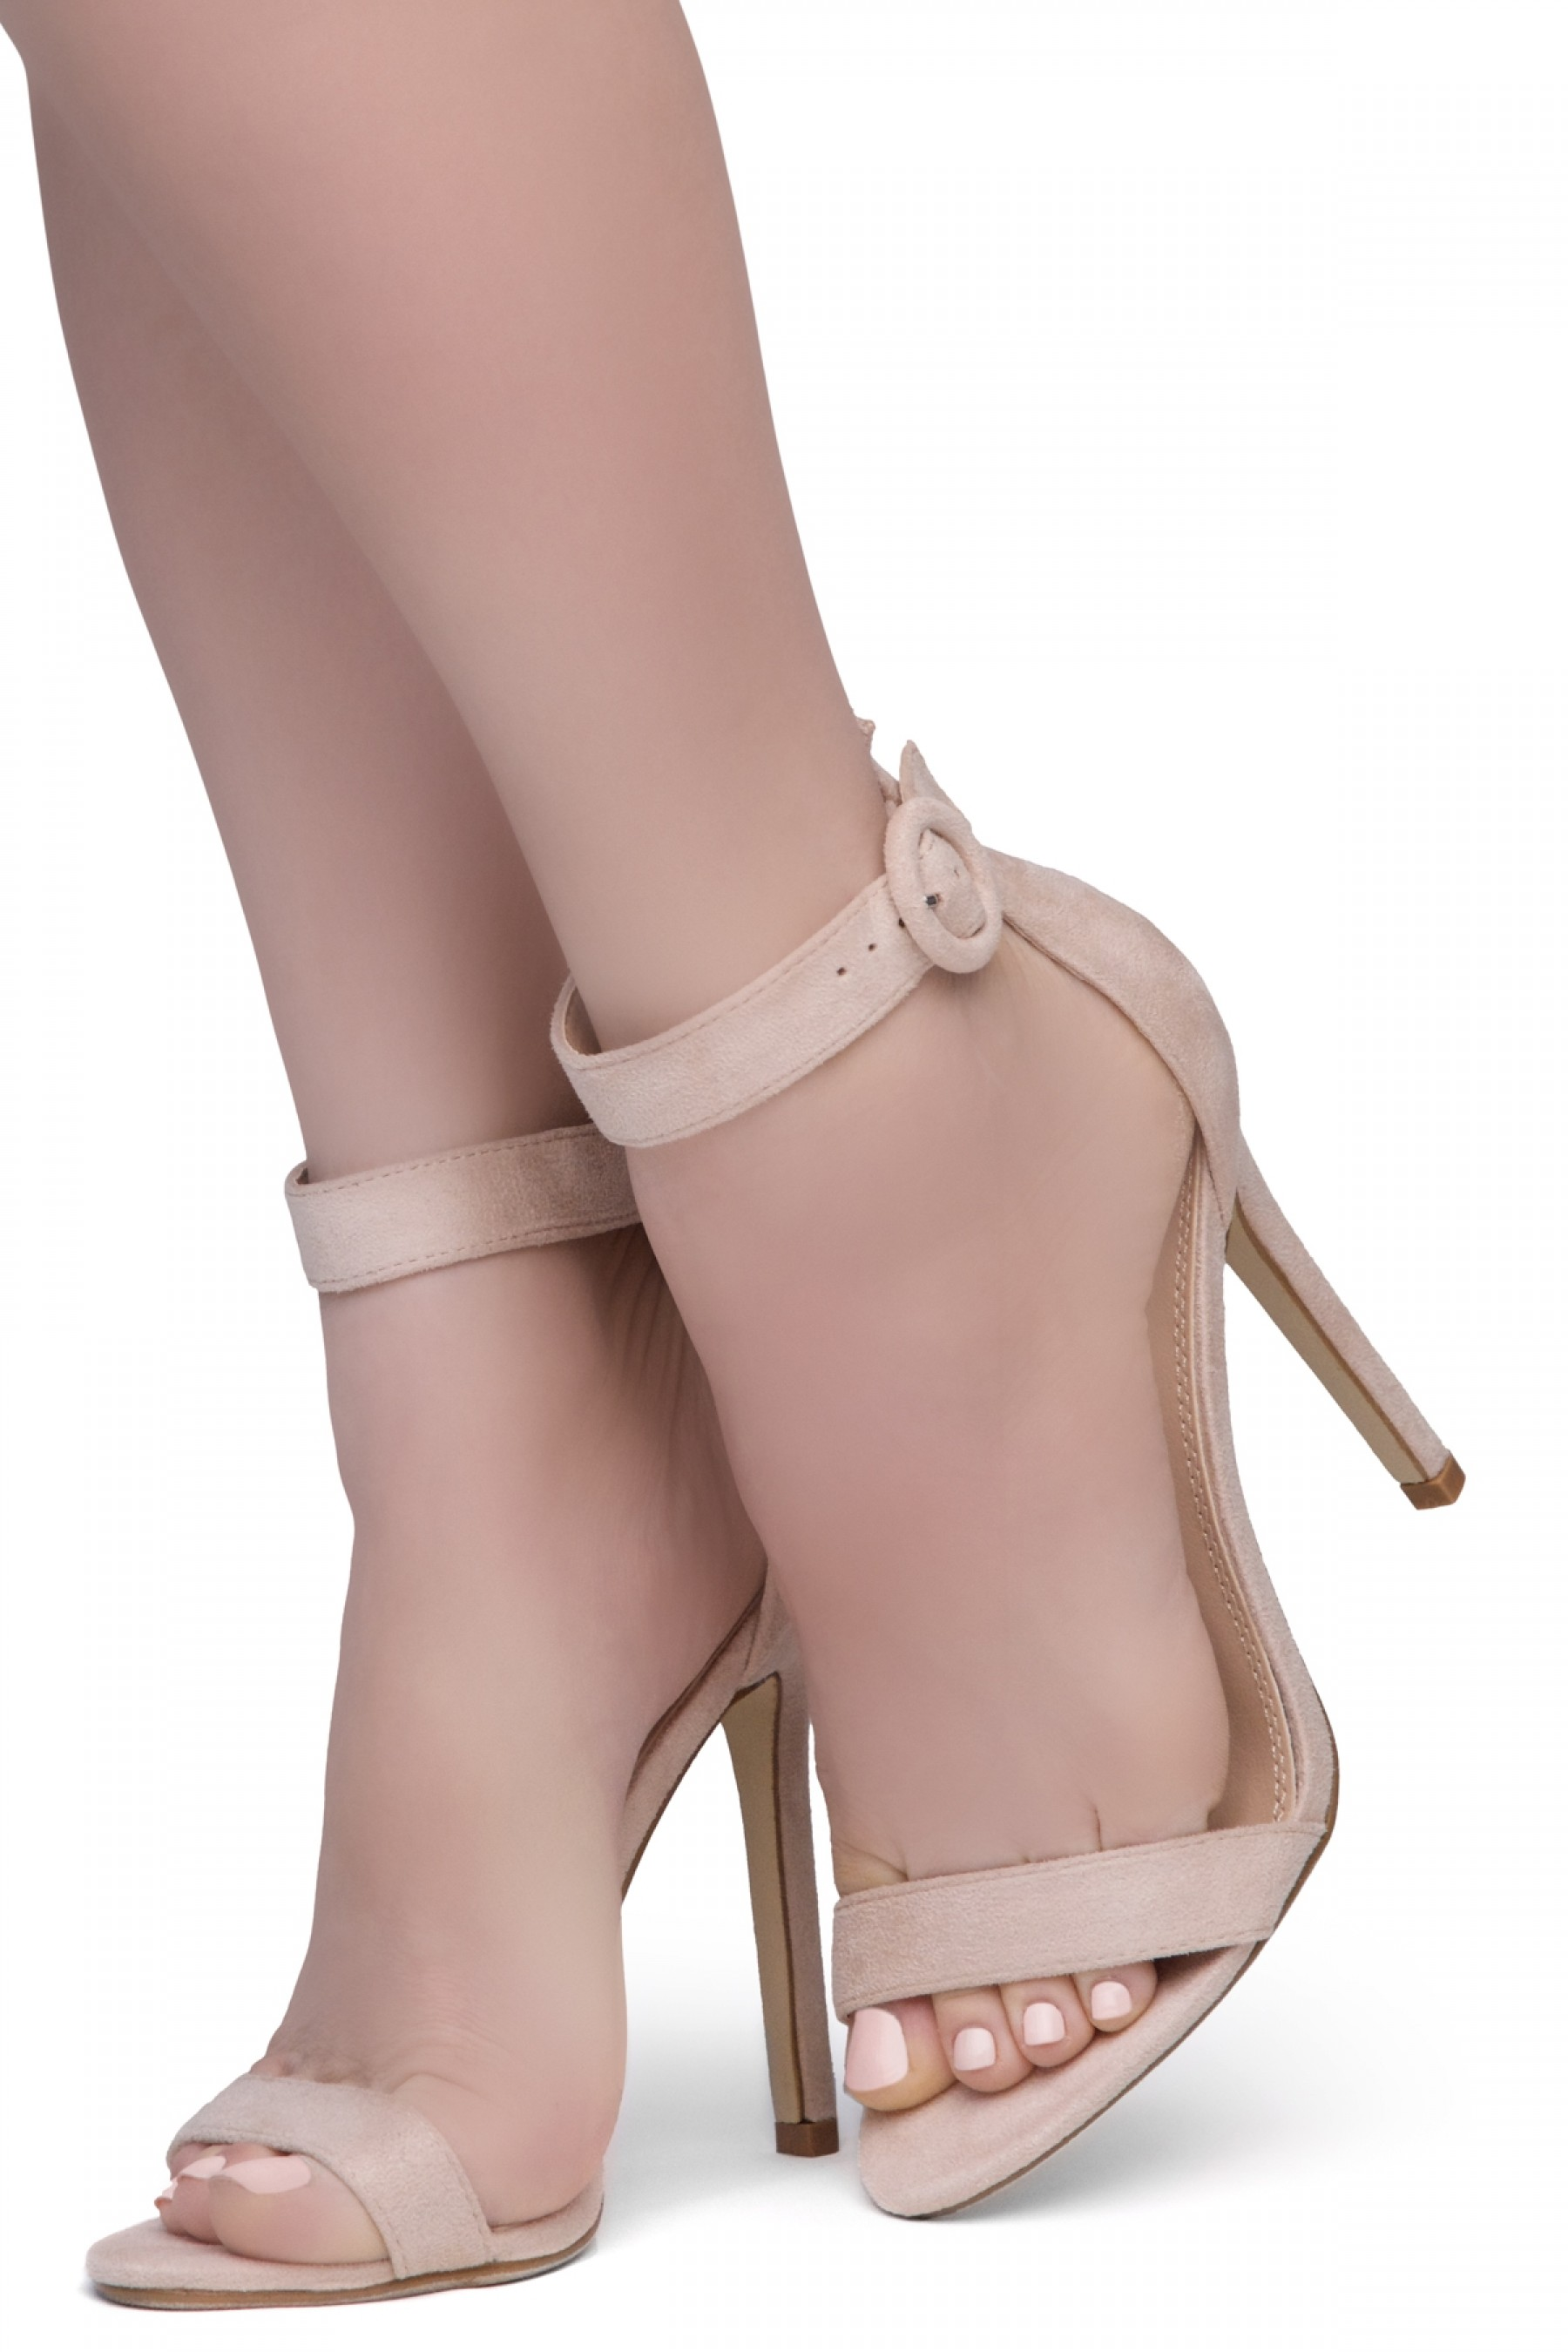 Shoe Land Charming- Ankle Strap Rounded Buckle Open Toe Stiletto Heel (Nude)